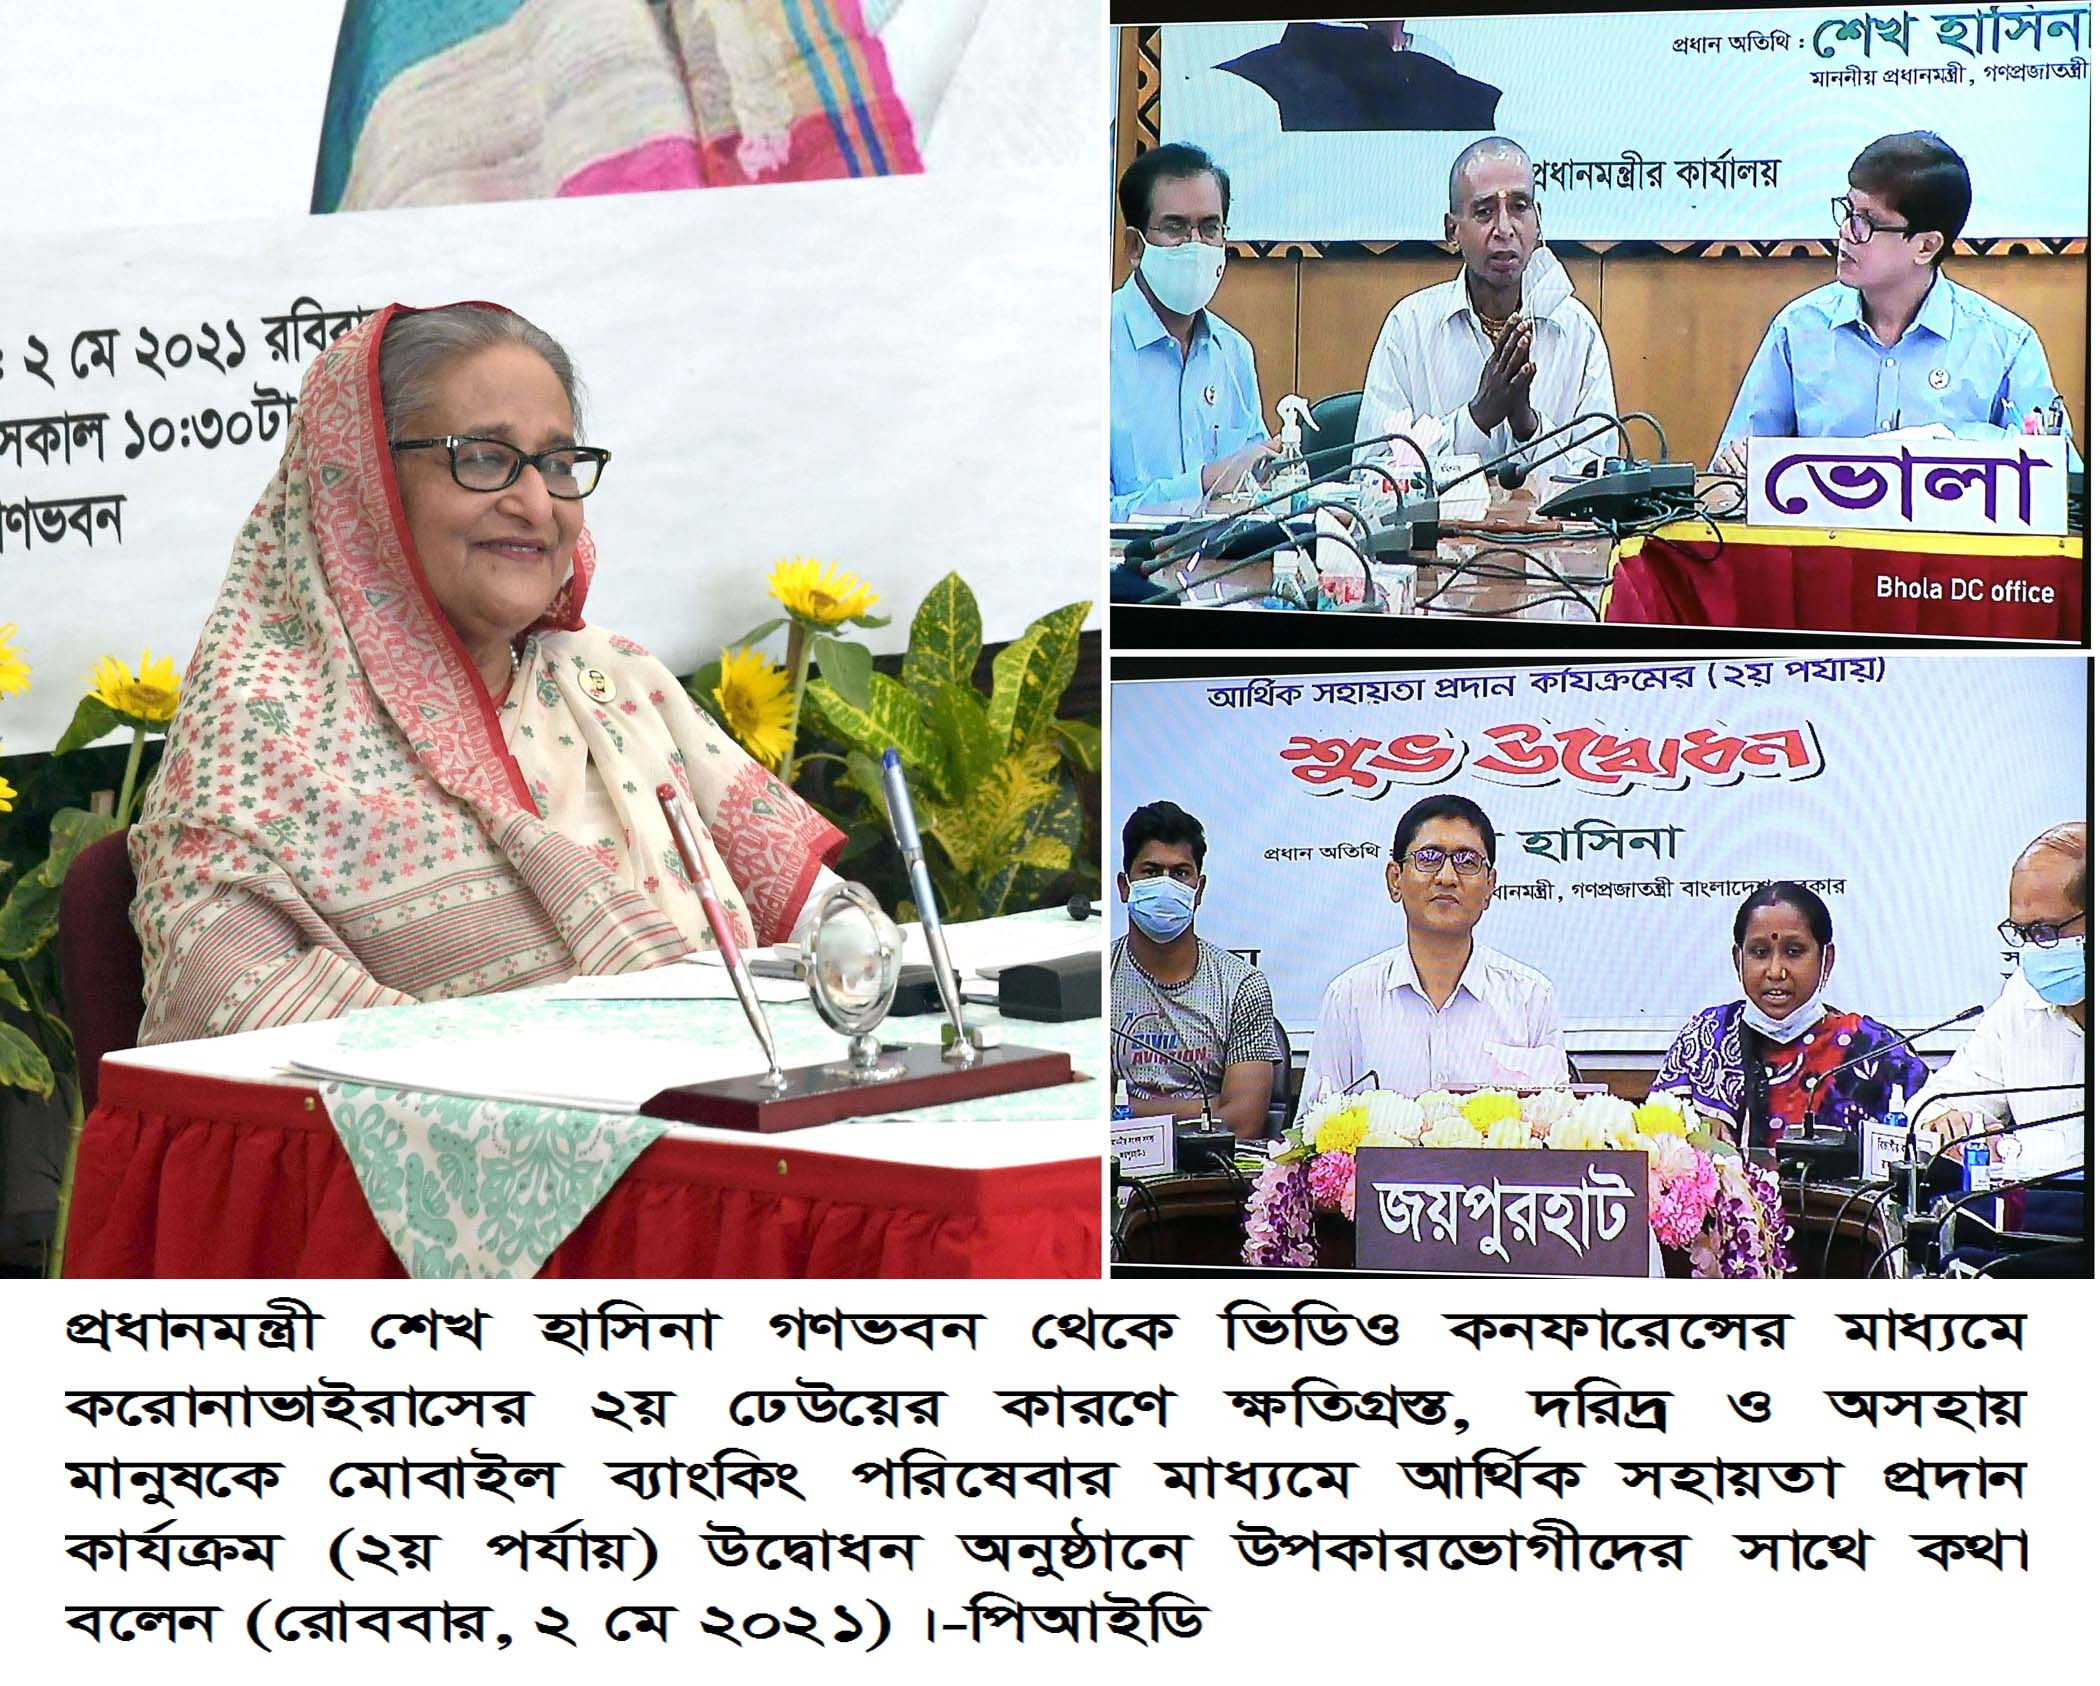 Sheikh Hasina joins special event